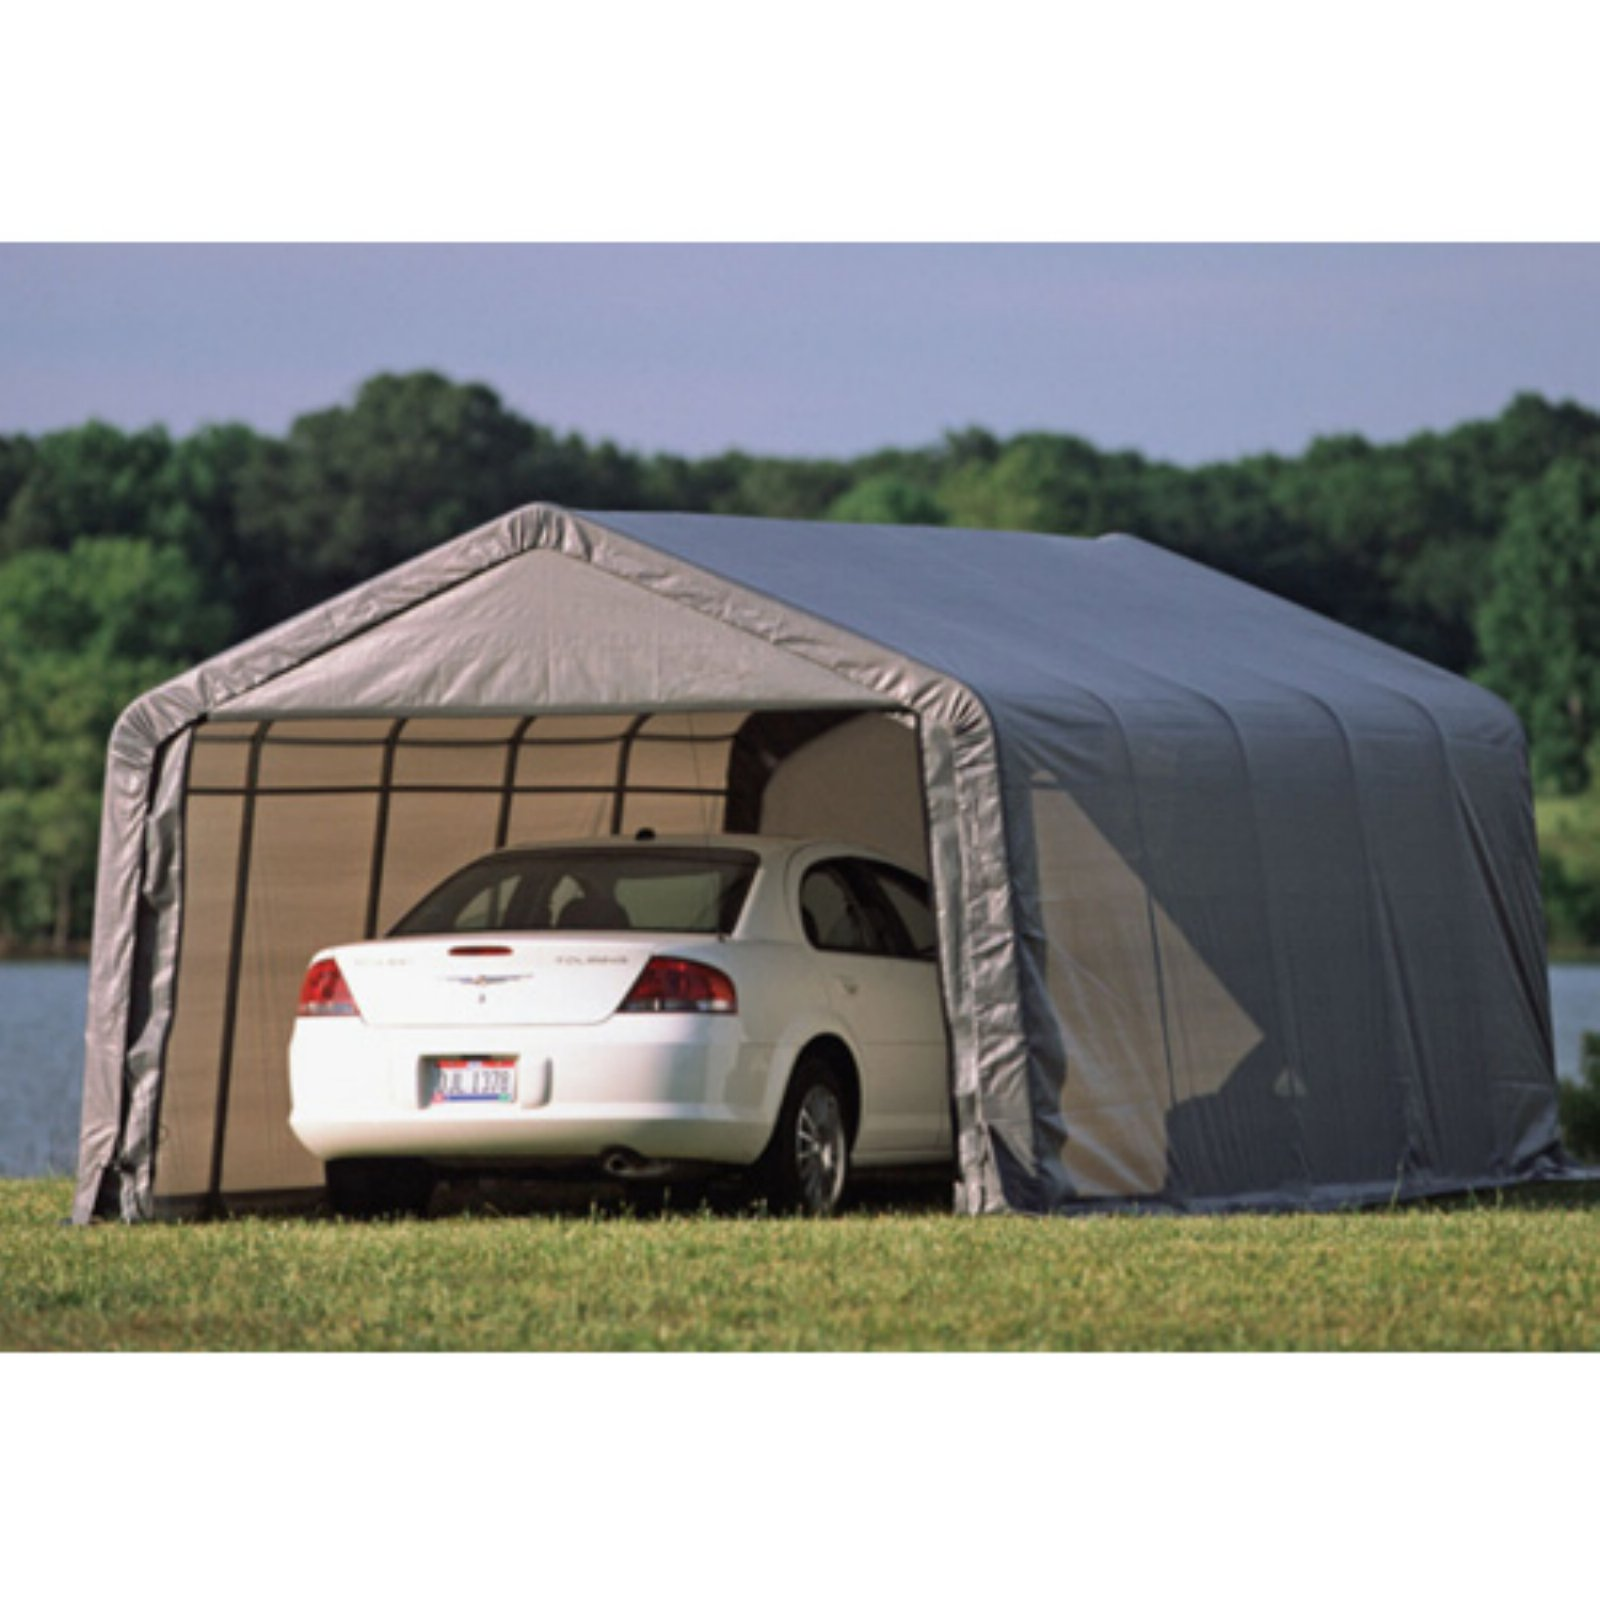 Shelterlogic 13' x 20' x 10' Round Style Shelter, Green